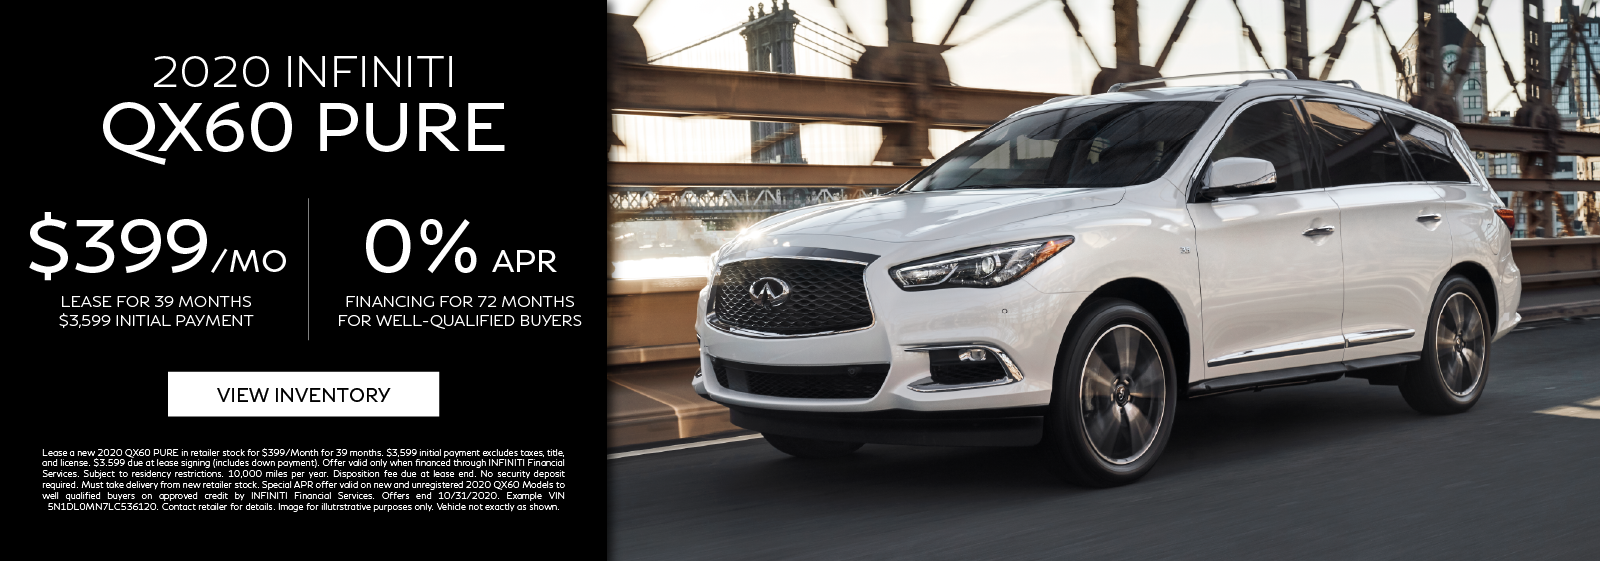 Lease a new 2020 QX60 PURE for $399 per month for 39 months or get 0% APR for 72 months. Click to view inventory.